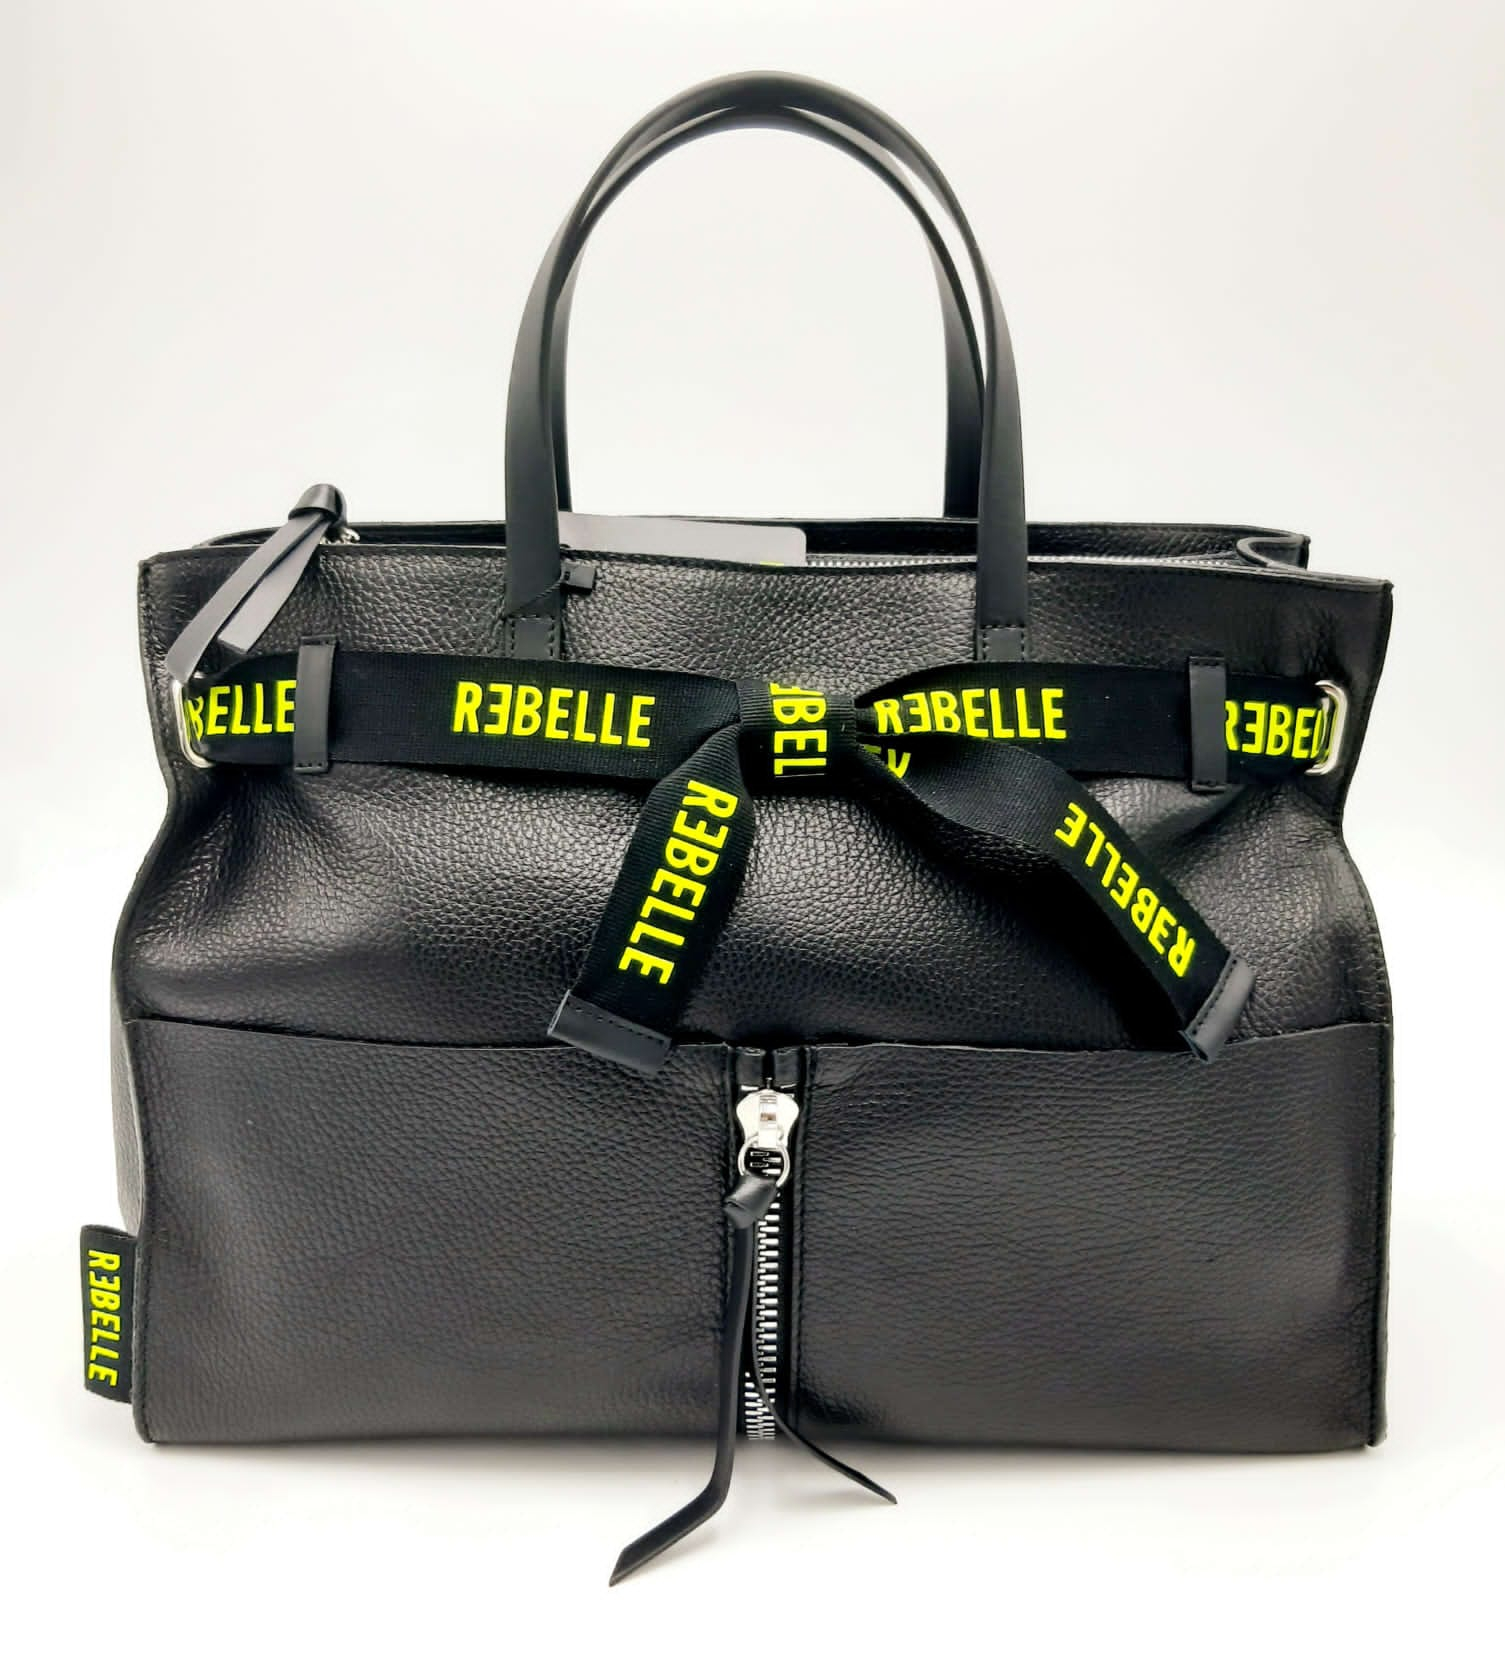 Borsa shopping Daphne in pelle bottalata nera REBELLE